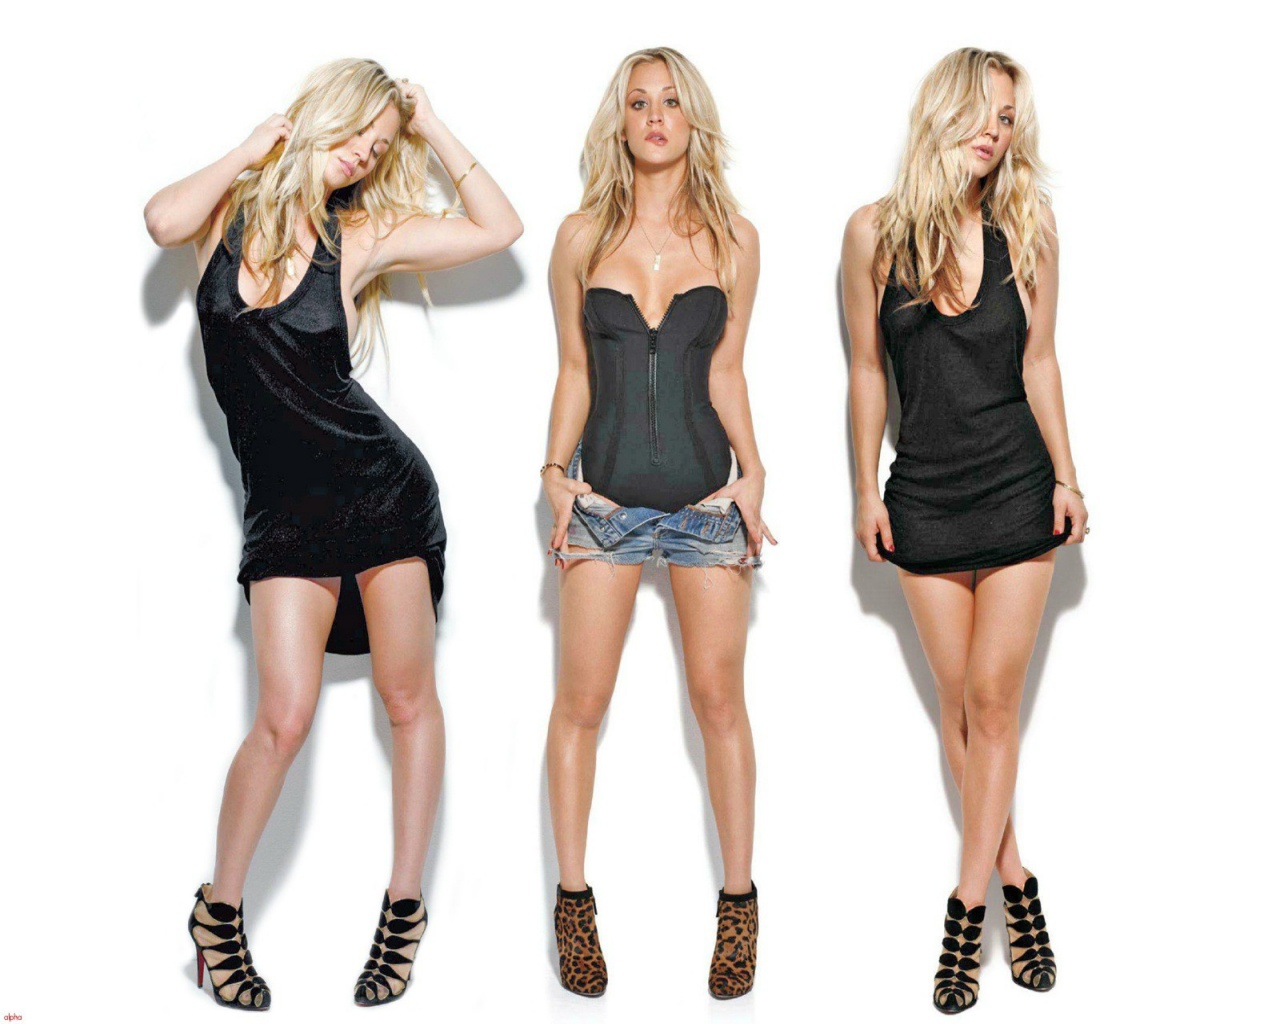 kaley cuoco hot photoshoot, hd wallpaper